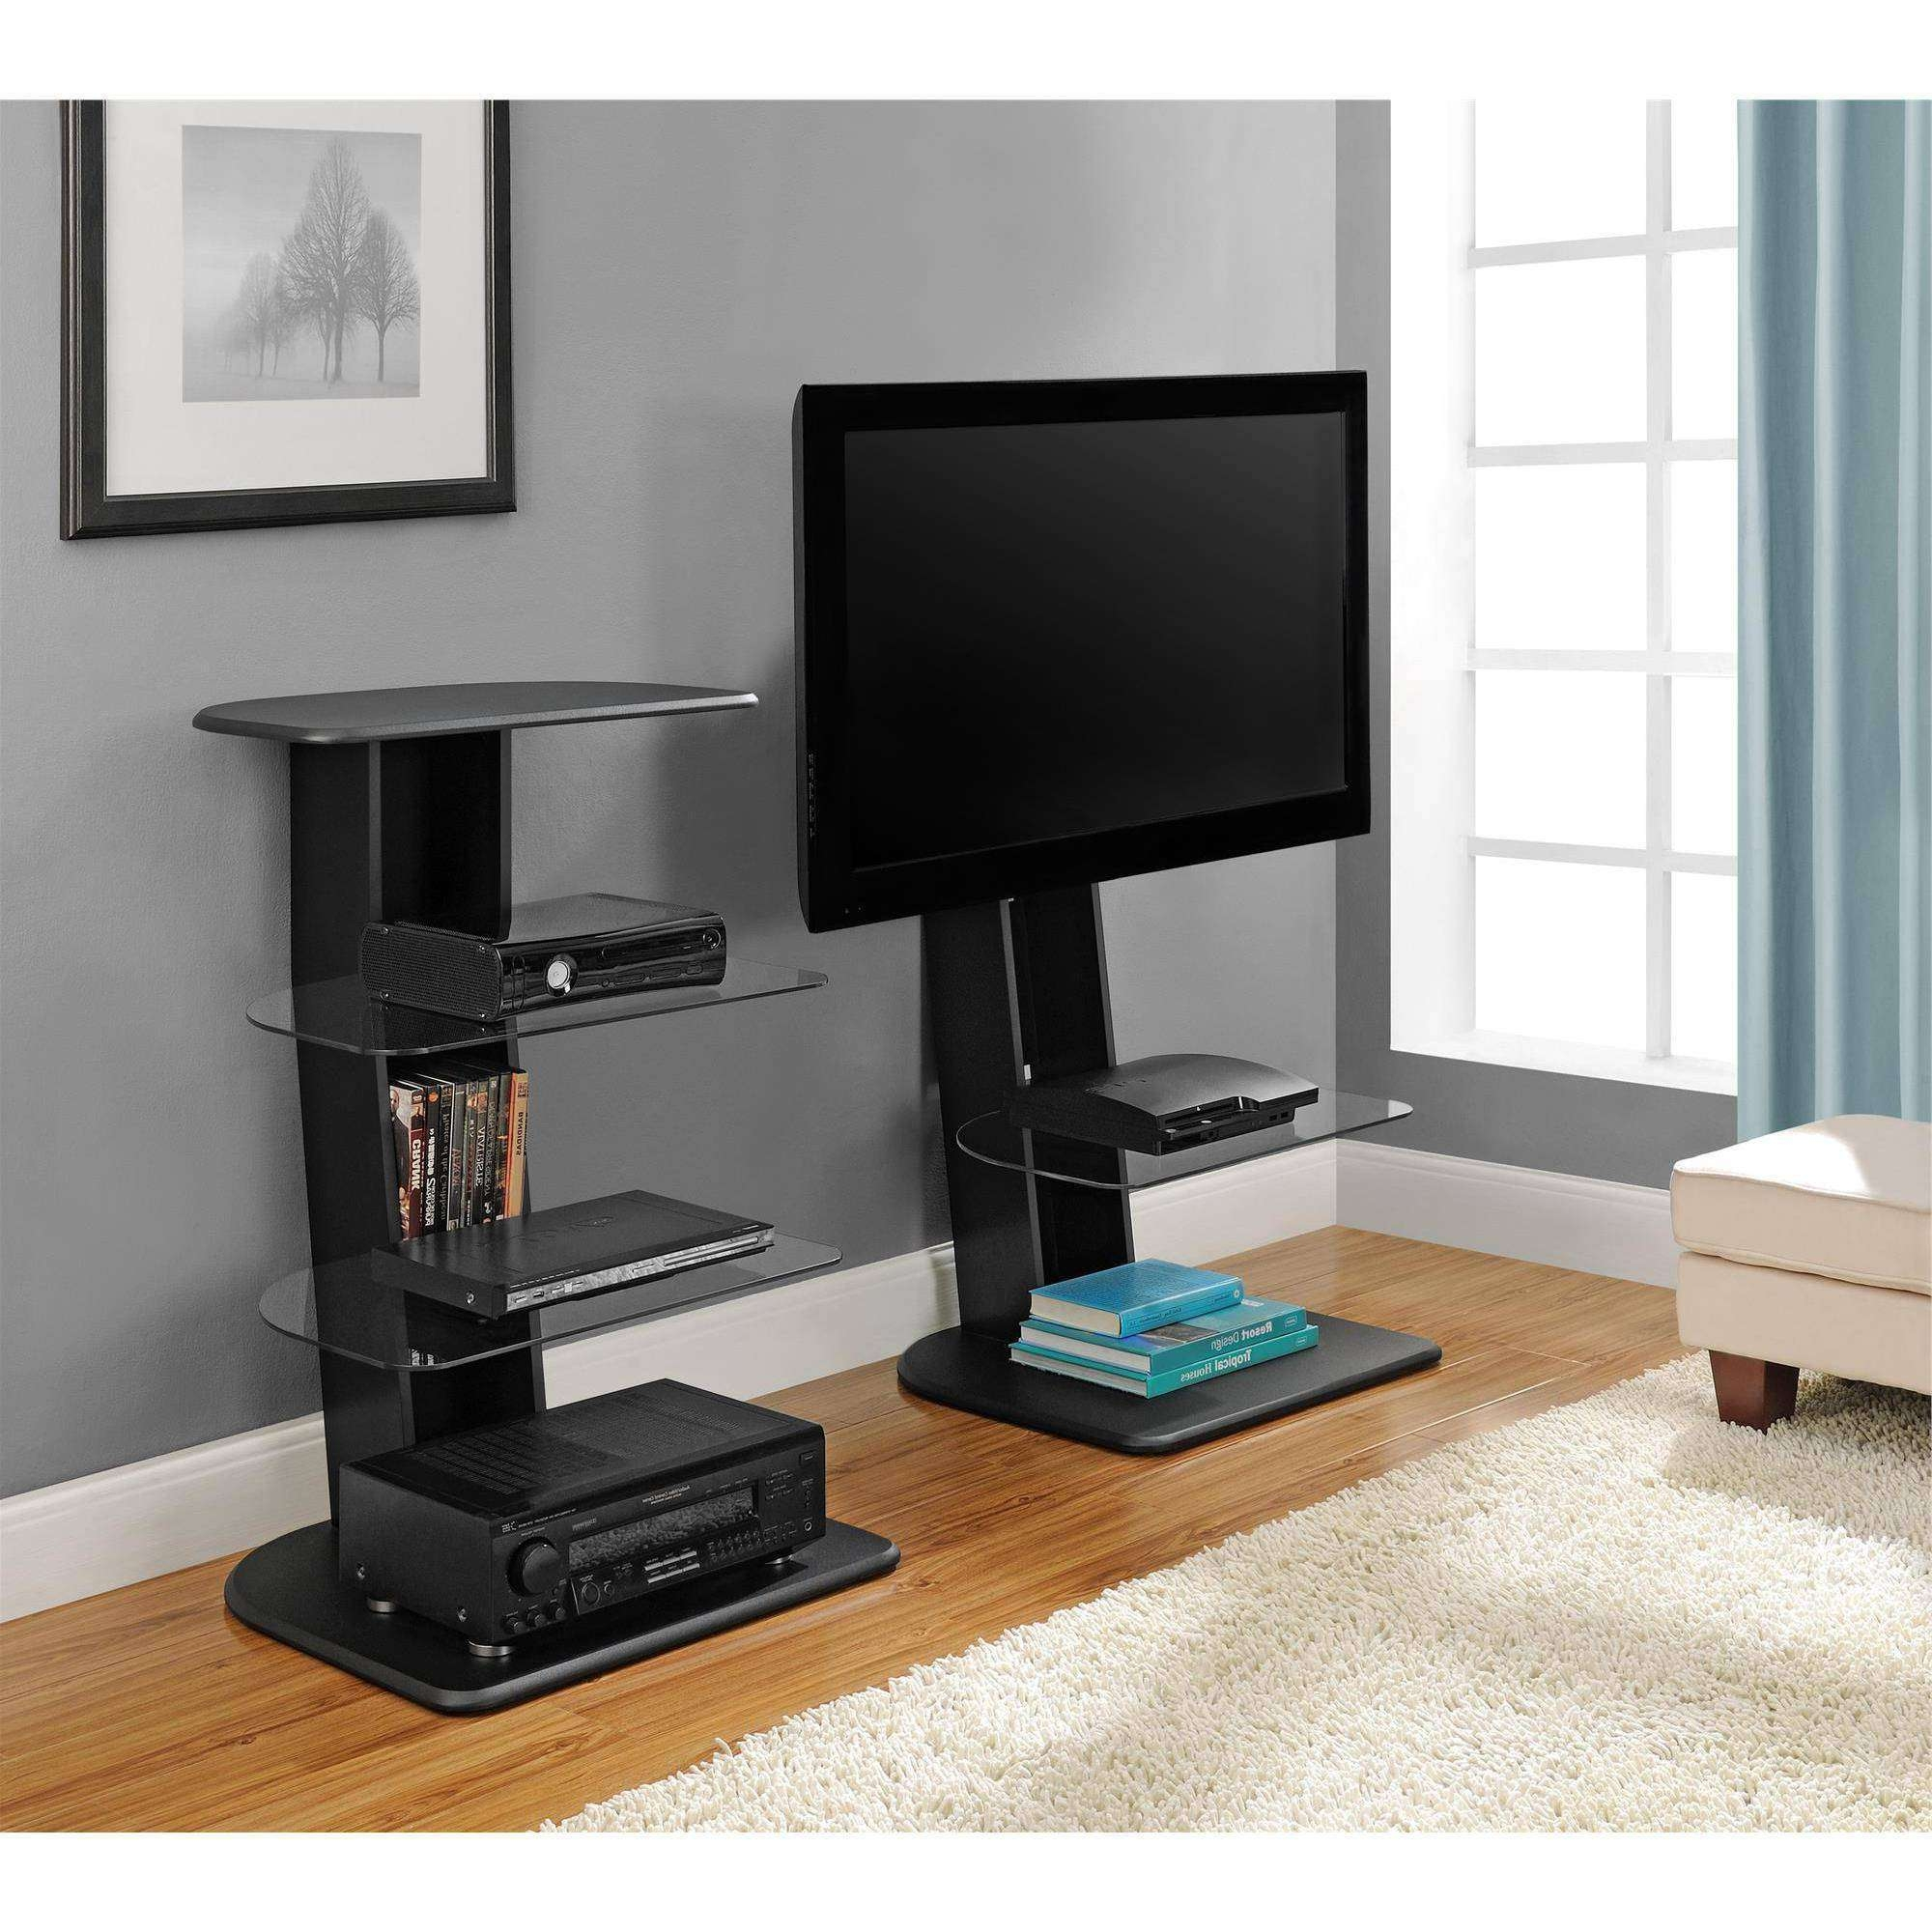 Good Slim Tv Stand 45 For Your Interior Decor Home With Slim Tv With Regard To Slim Tv Stands (View 10 of 20)